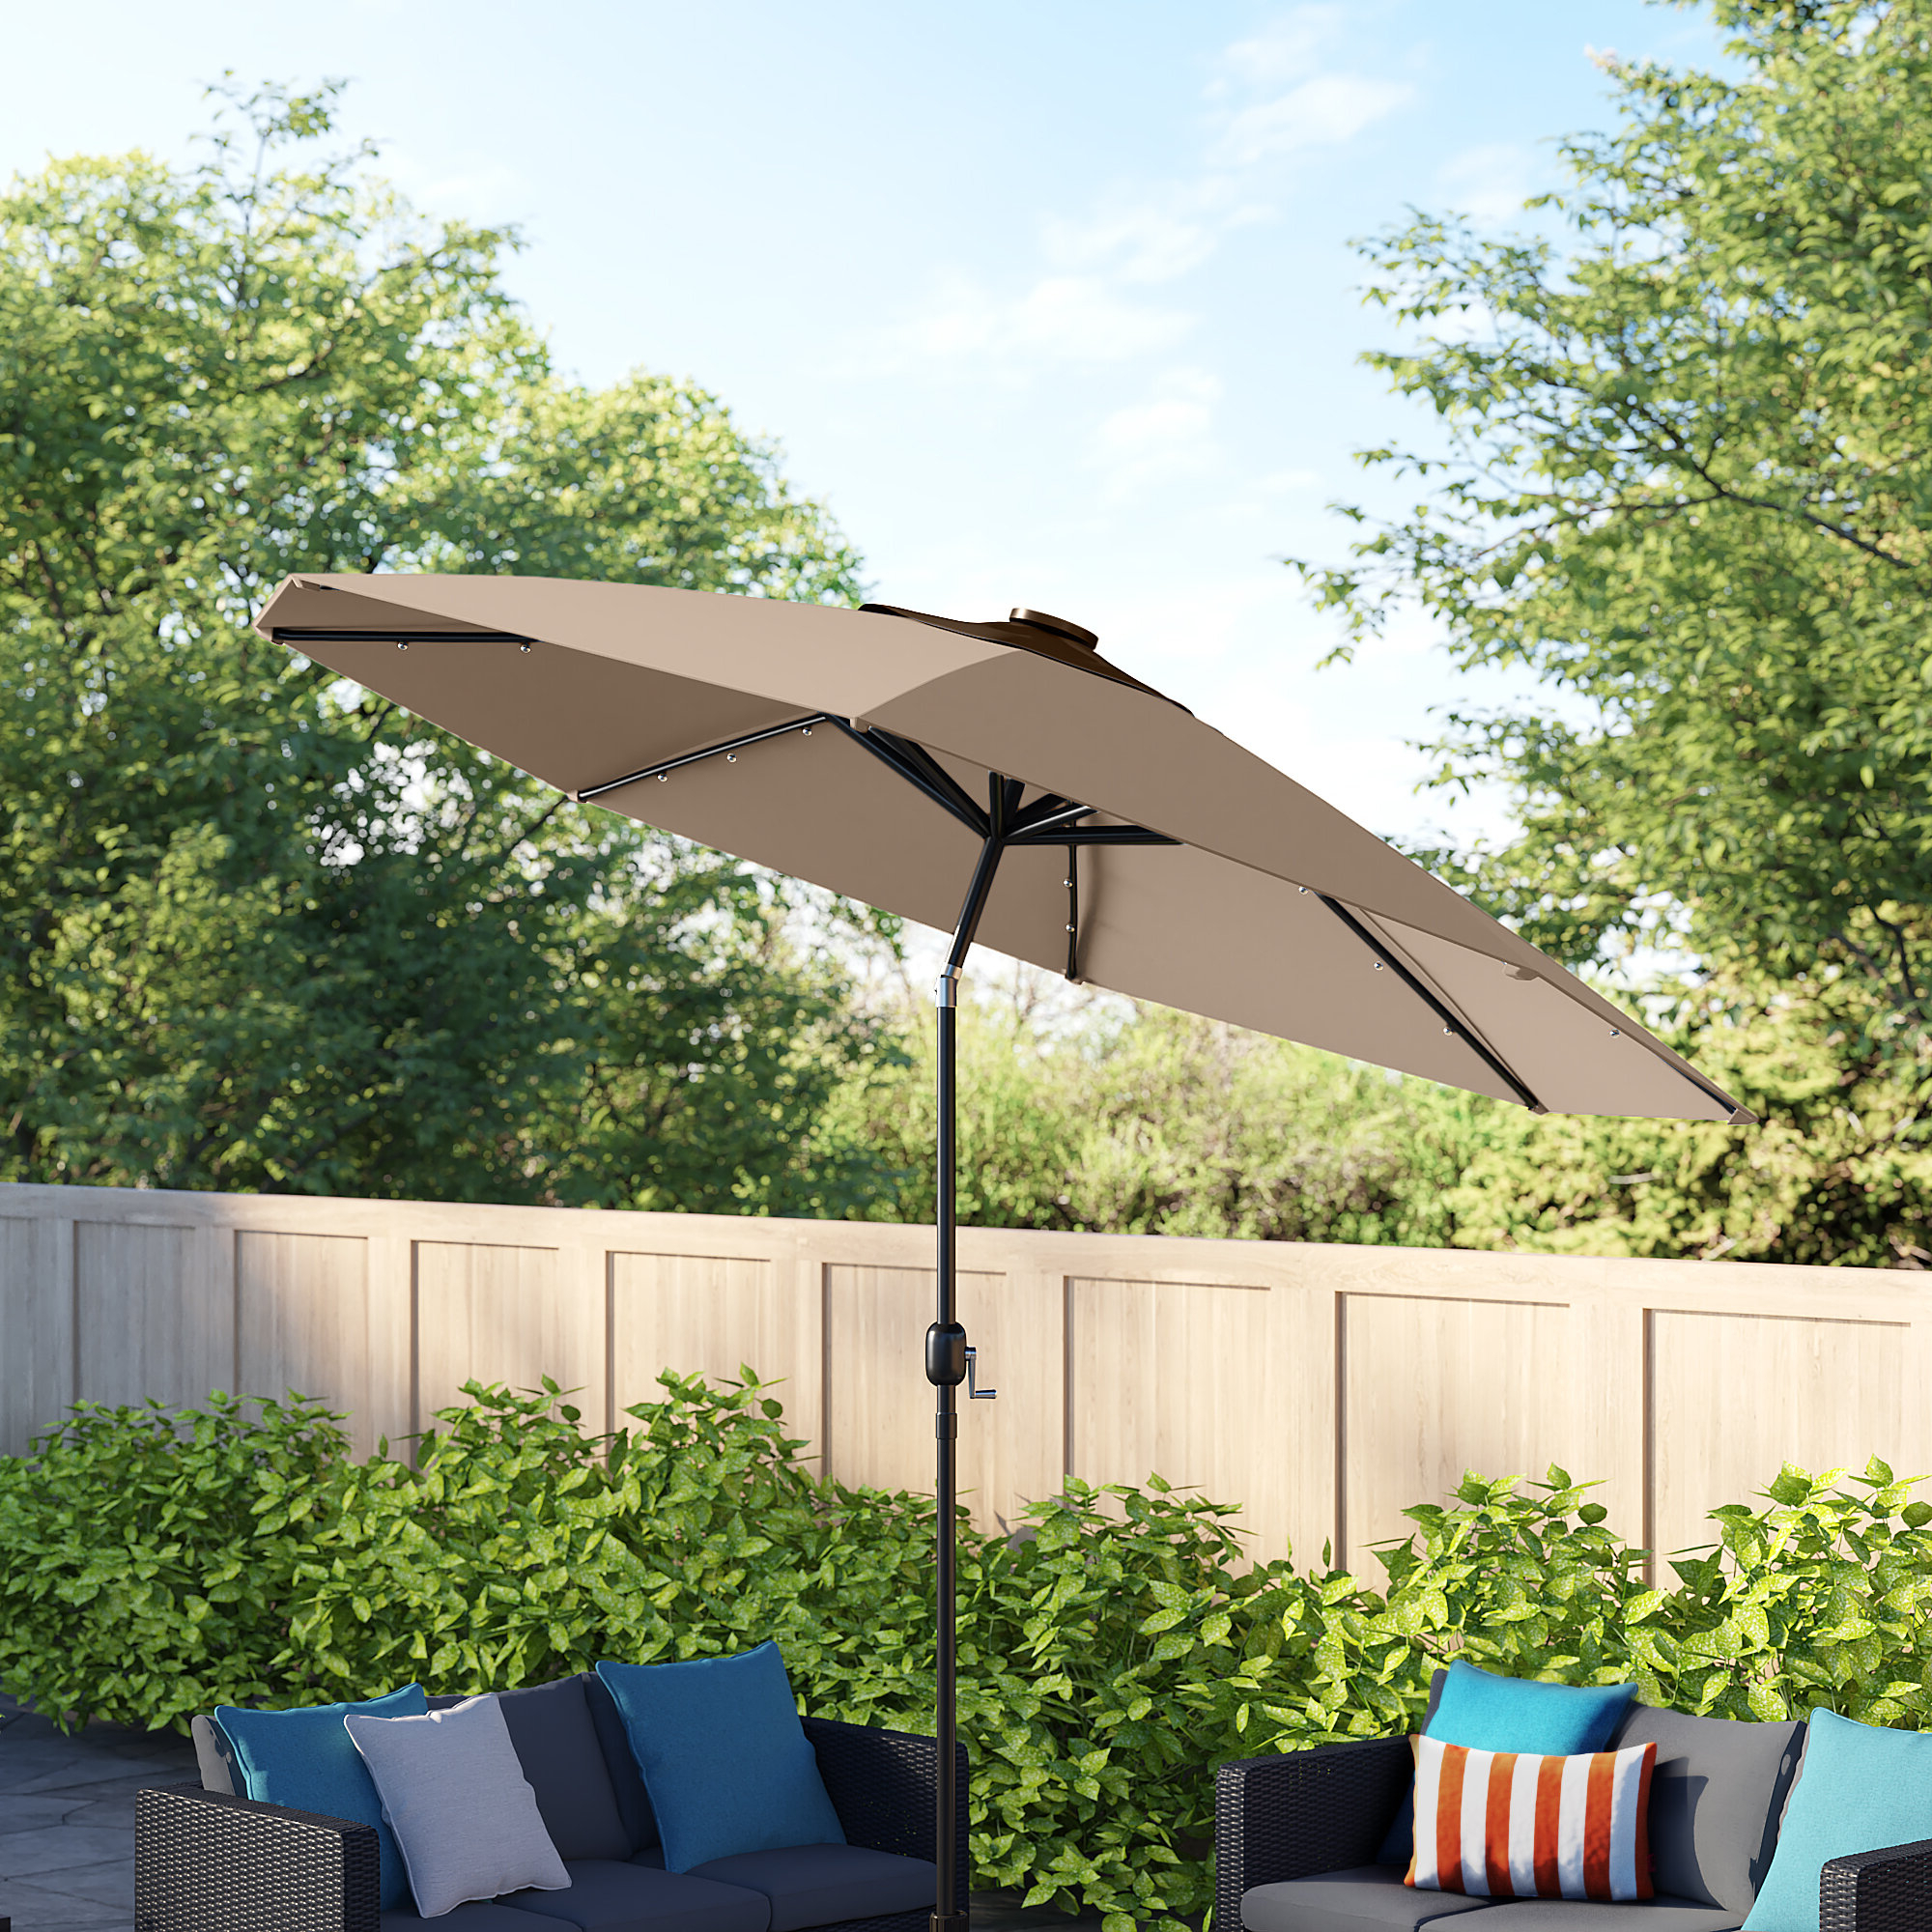 Hilma Solar Cantilever Umbrellas Intended For Most Recently Released Cantilever Umbrella Led Lights (View 8 of 20)